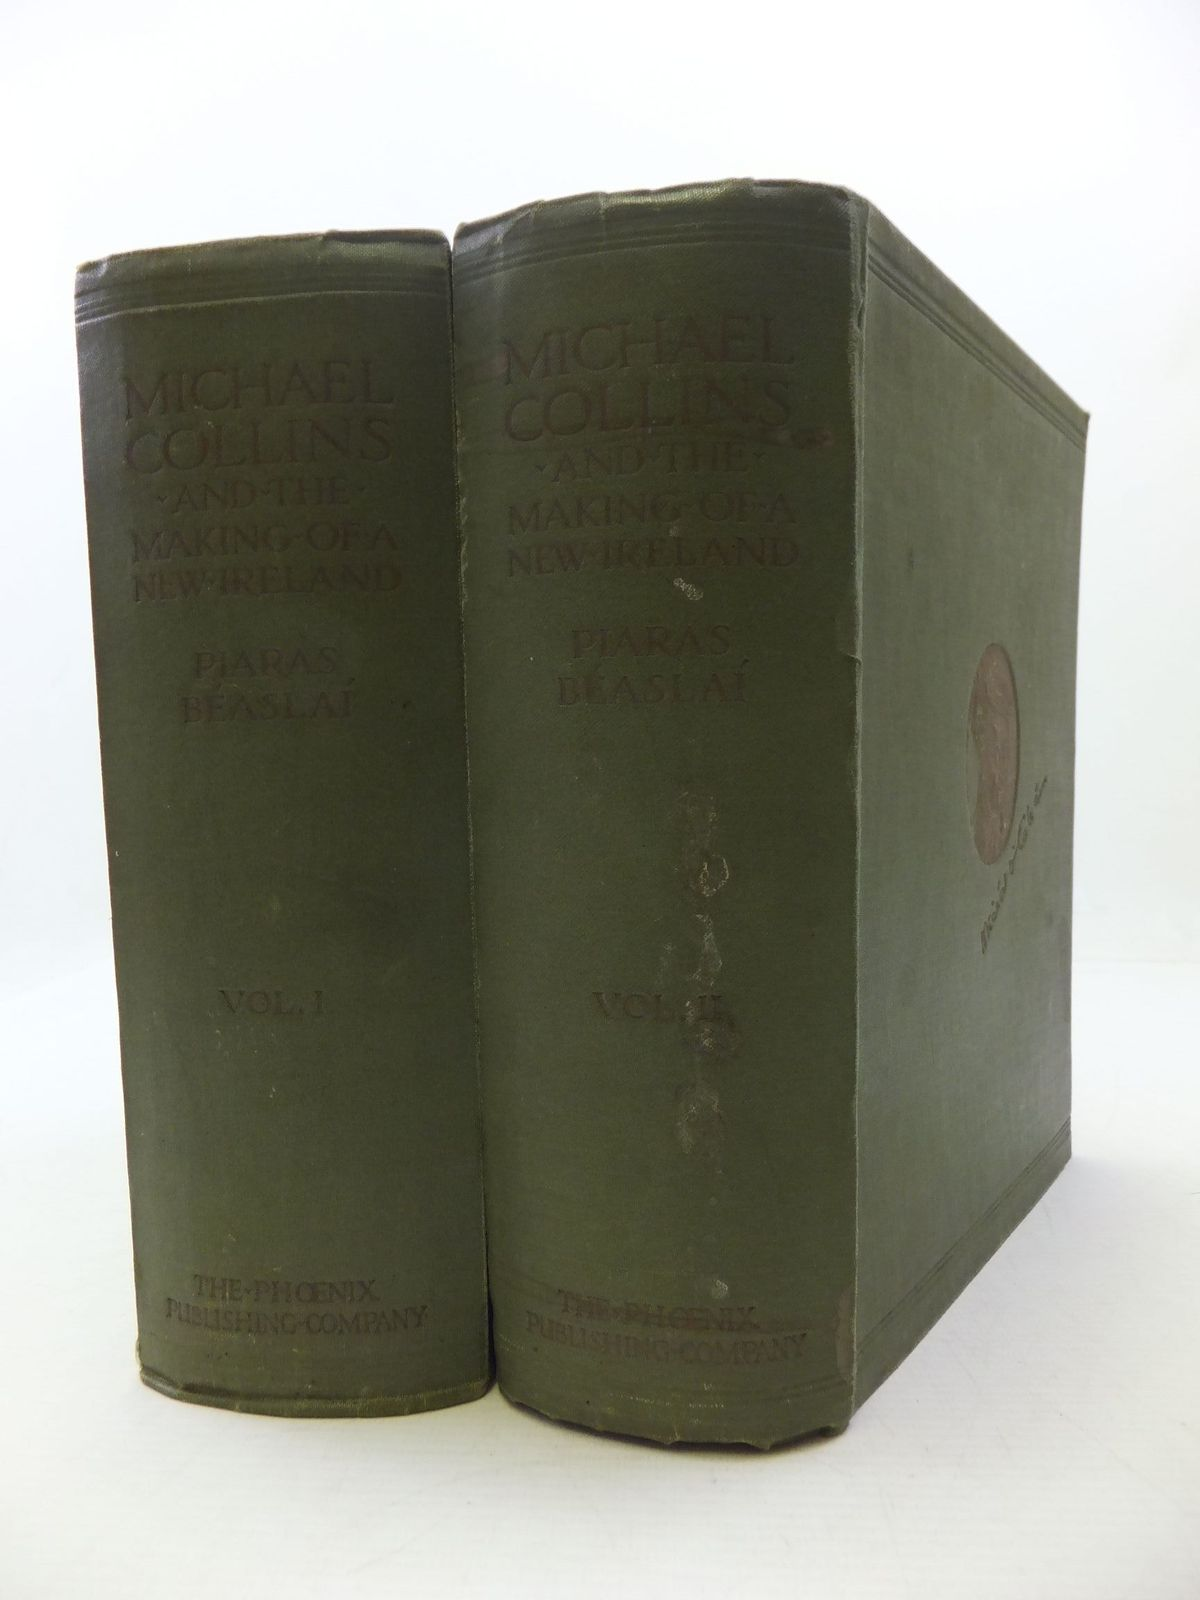 Photo of MICHAEL COLLINS AND THE MAKING OF A NEW IRELAND (2 VOLUMES) written by Beaslai, Piaras published by Phoenix Publishing Co., Ltd. (STOCK CODE: 1808076)  for sale by Stella & Rose's Books